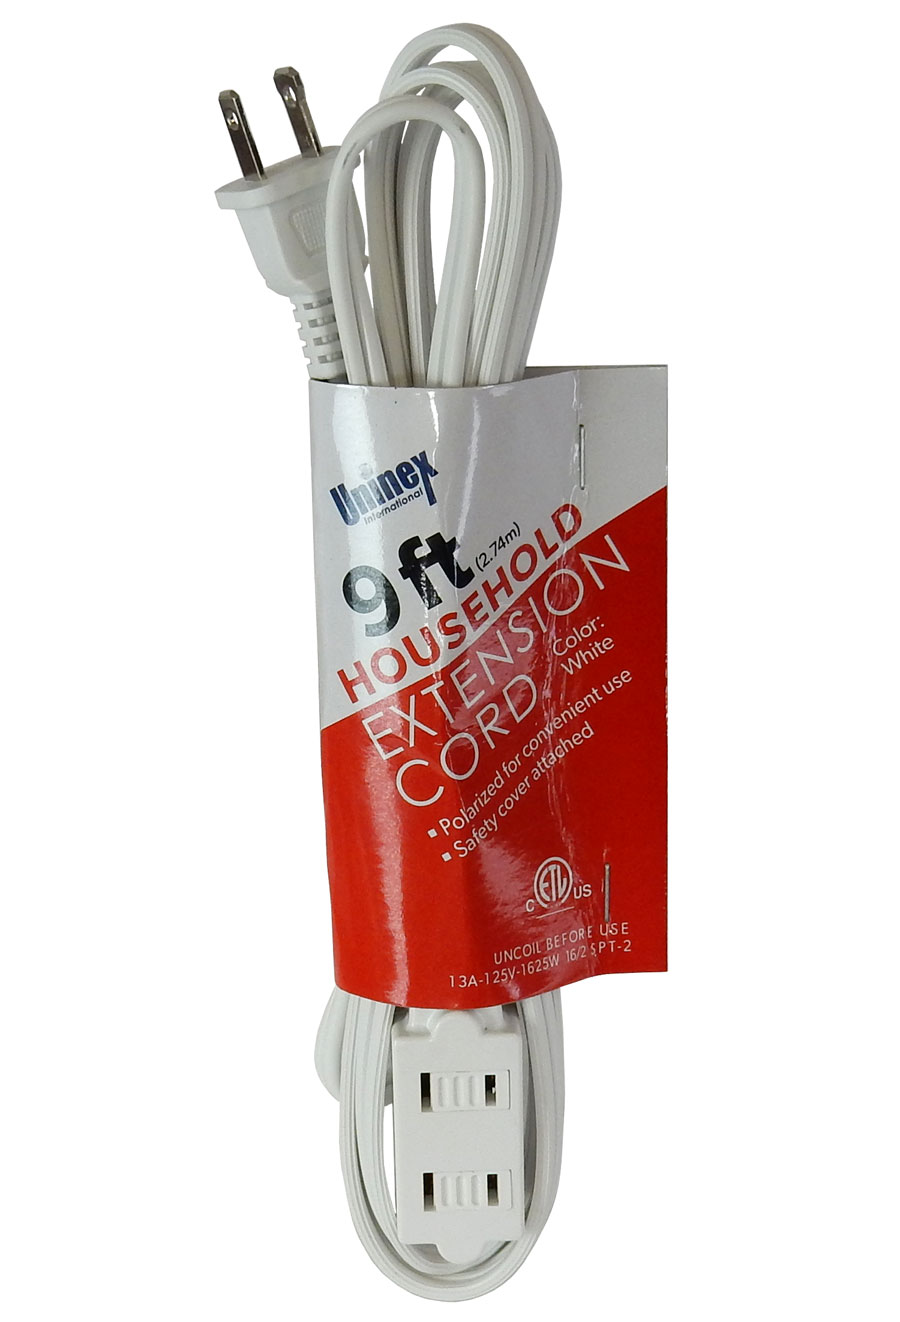 9' HOUSEHOLD EXTENSION CORD